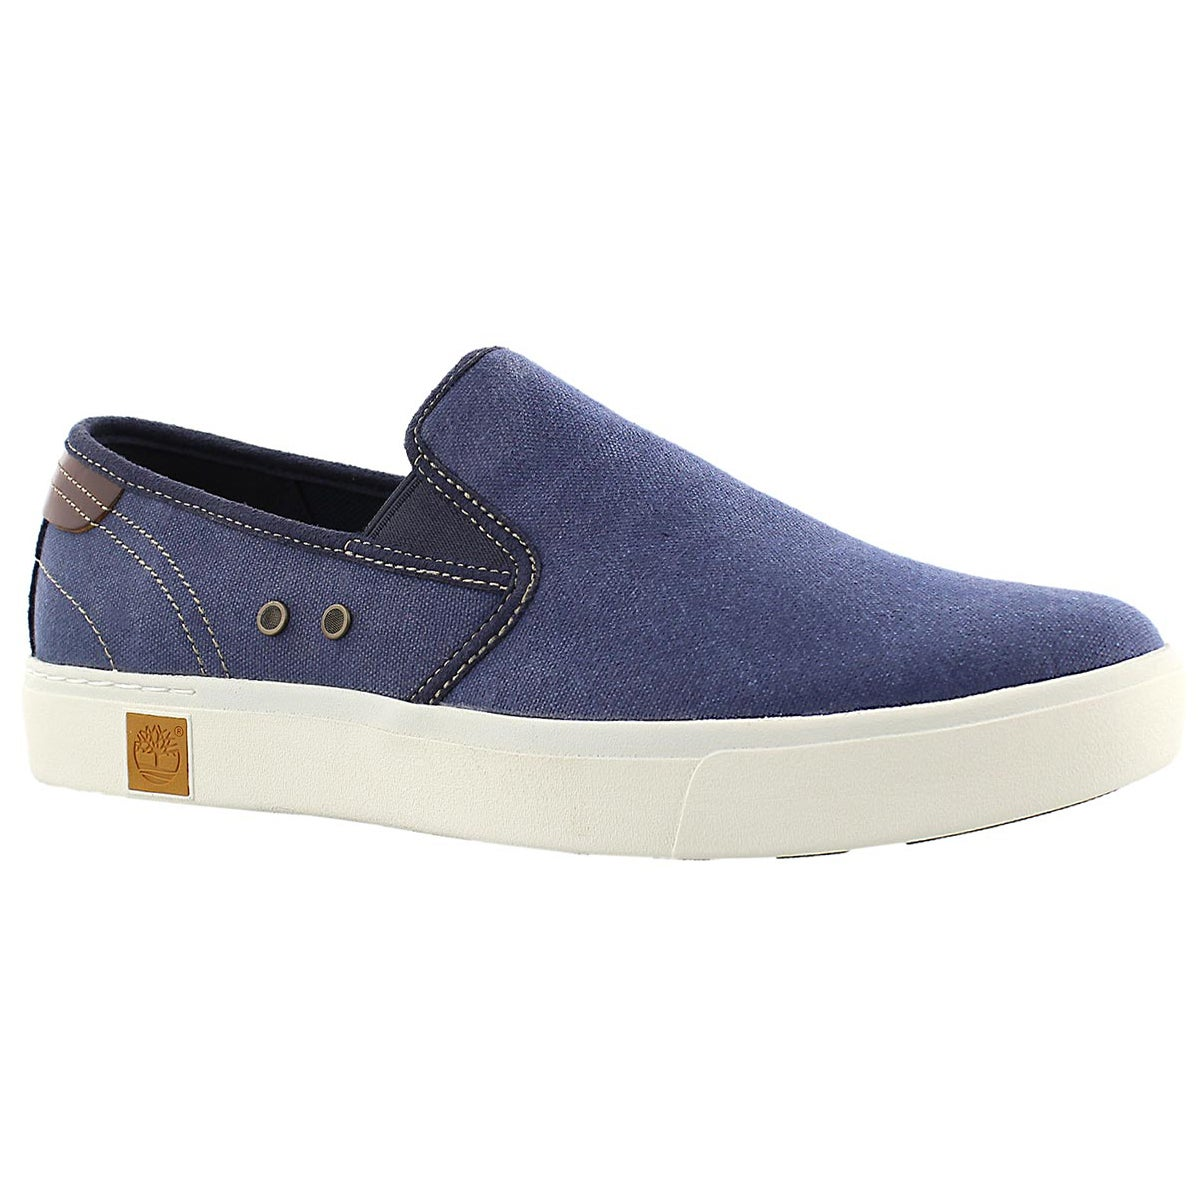 Mns Amherst navy slip on casual shoe